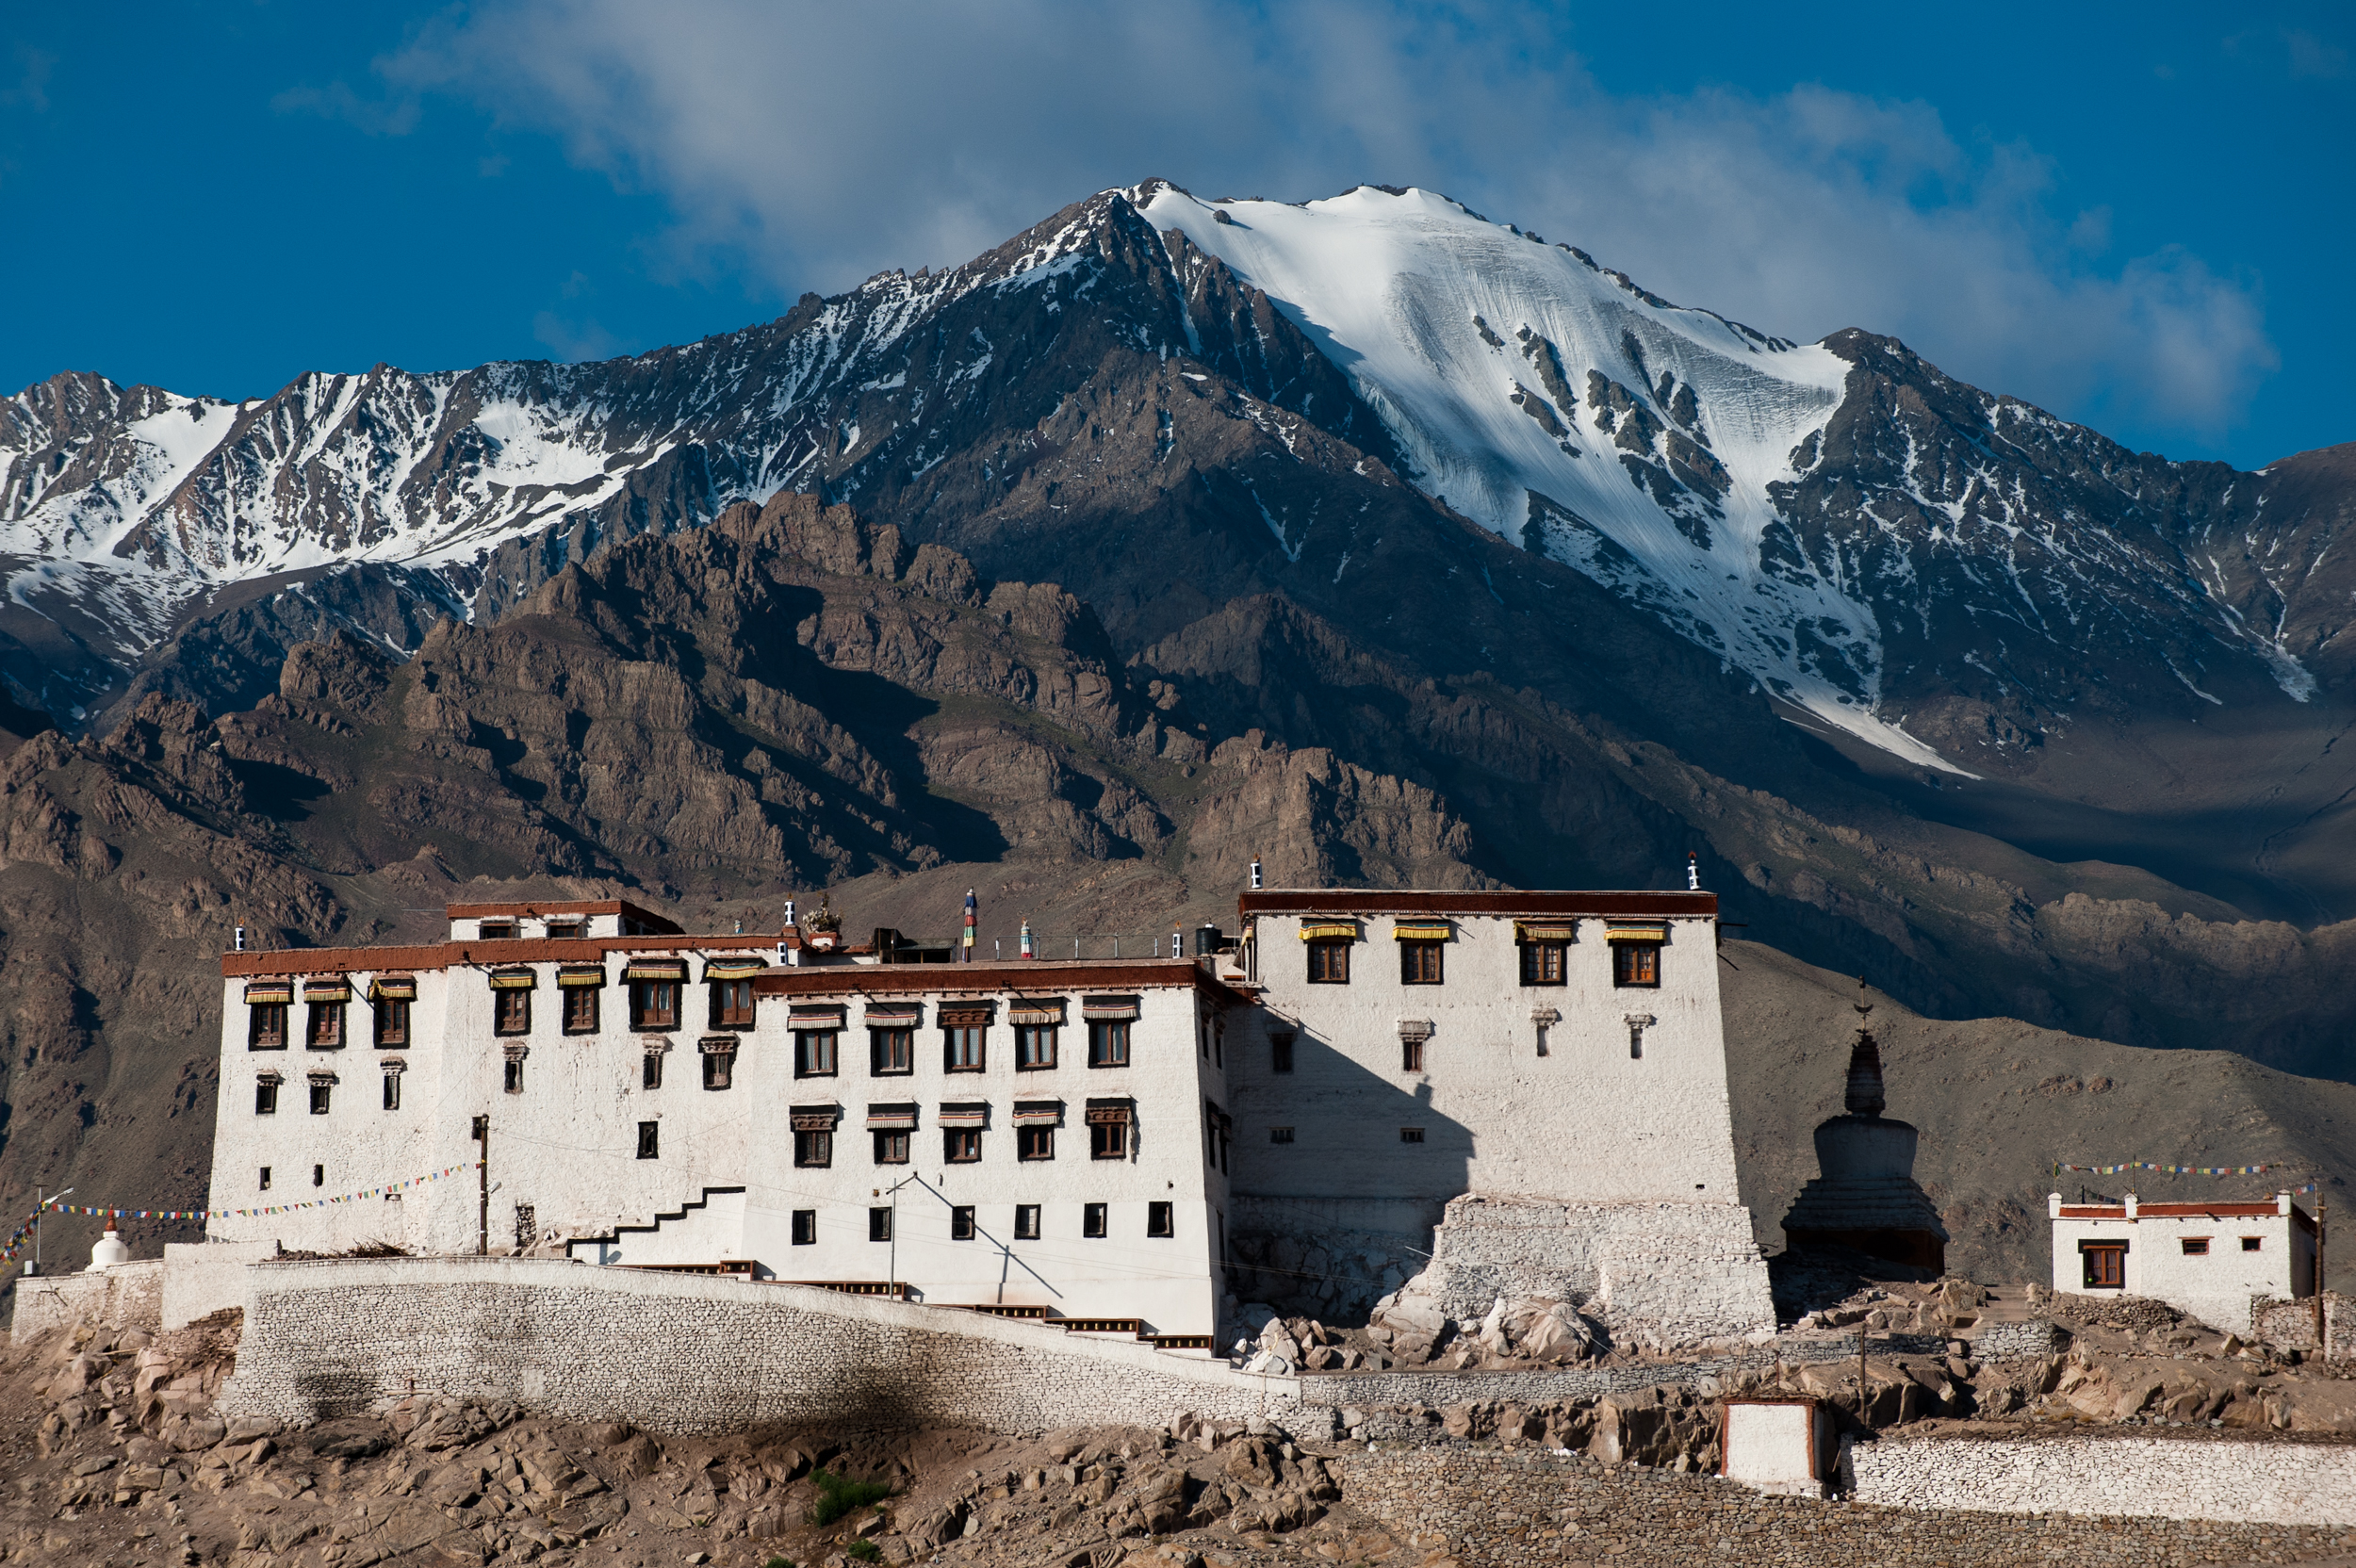 India - Ladakh   In the furthest reaches of northern India, a 16th-century monastery perches upon a rock shaped like a 'stakna', – a tiger's nose. (The Stakna monastery lies at a distance of 25 Kms from Leh on the Right bank of the River Indus).